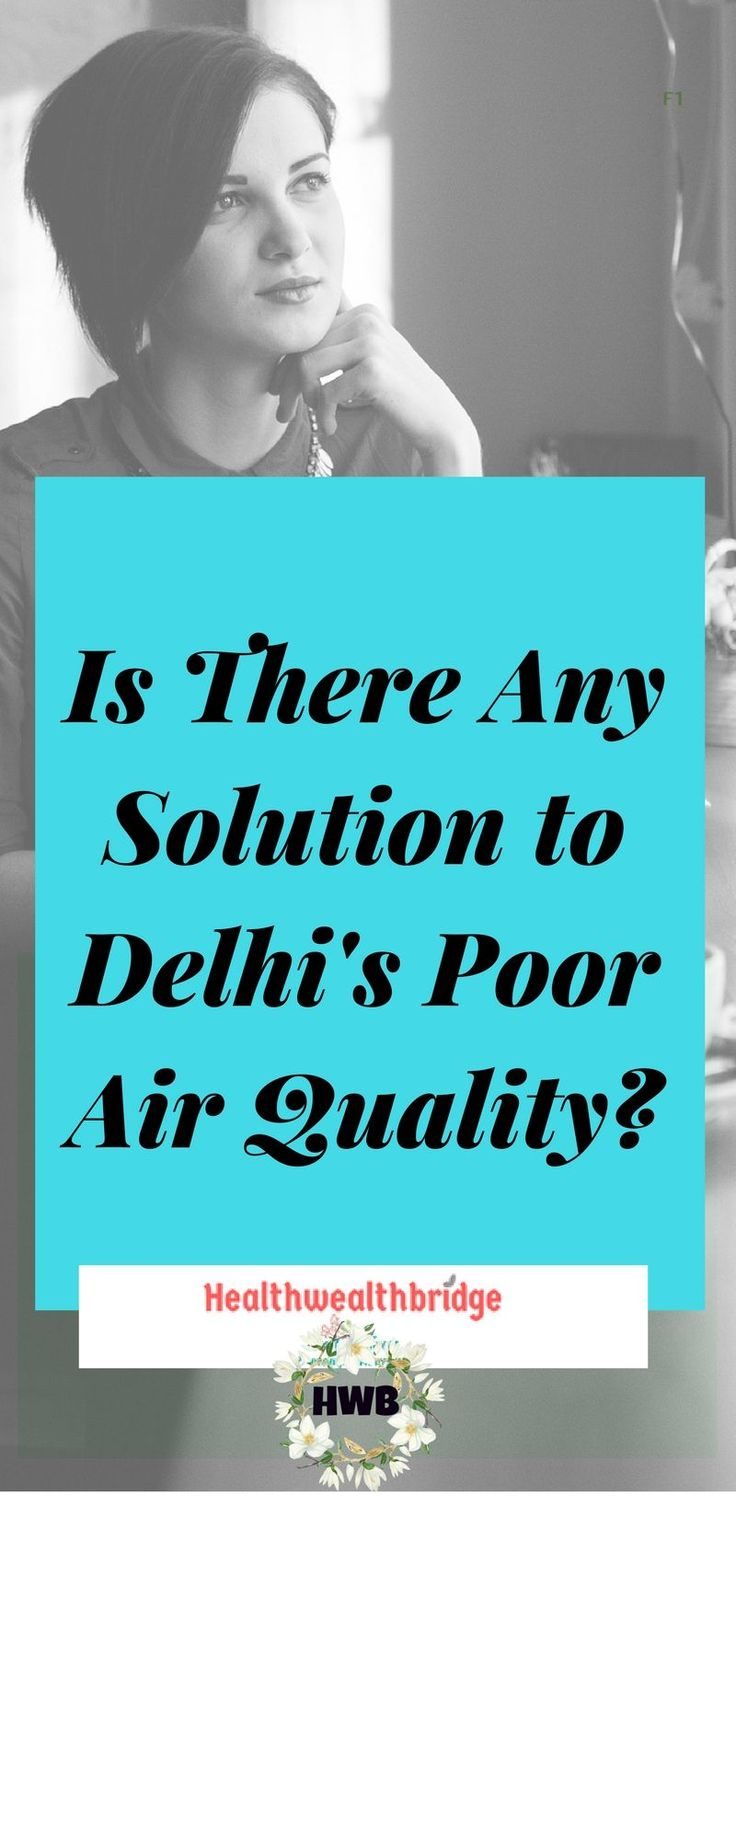 Is There Any Solution to Delhi's Poor Air Quality? Maybe solar powered cars, electric cars, solar-powered energy sources for Phone towers.Click to know more  #Airpollution #Environment